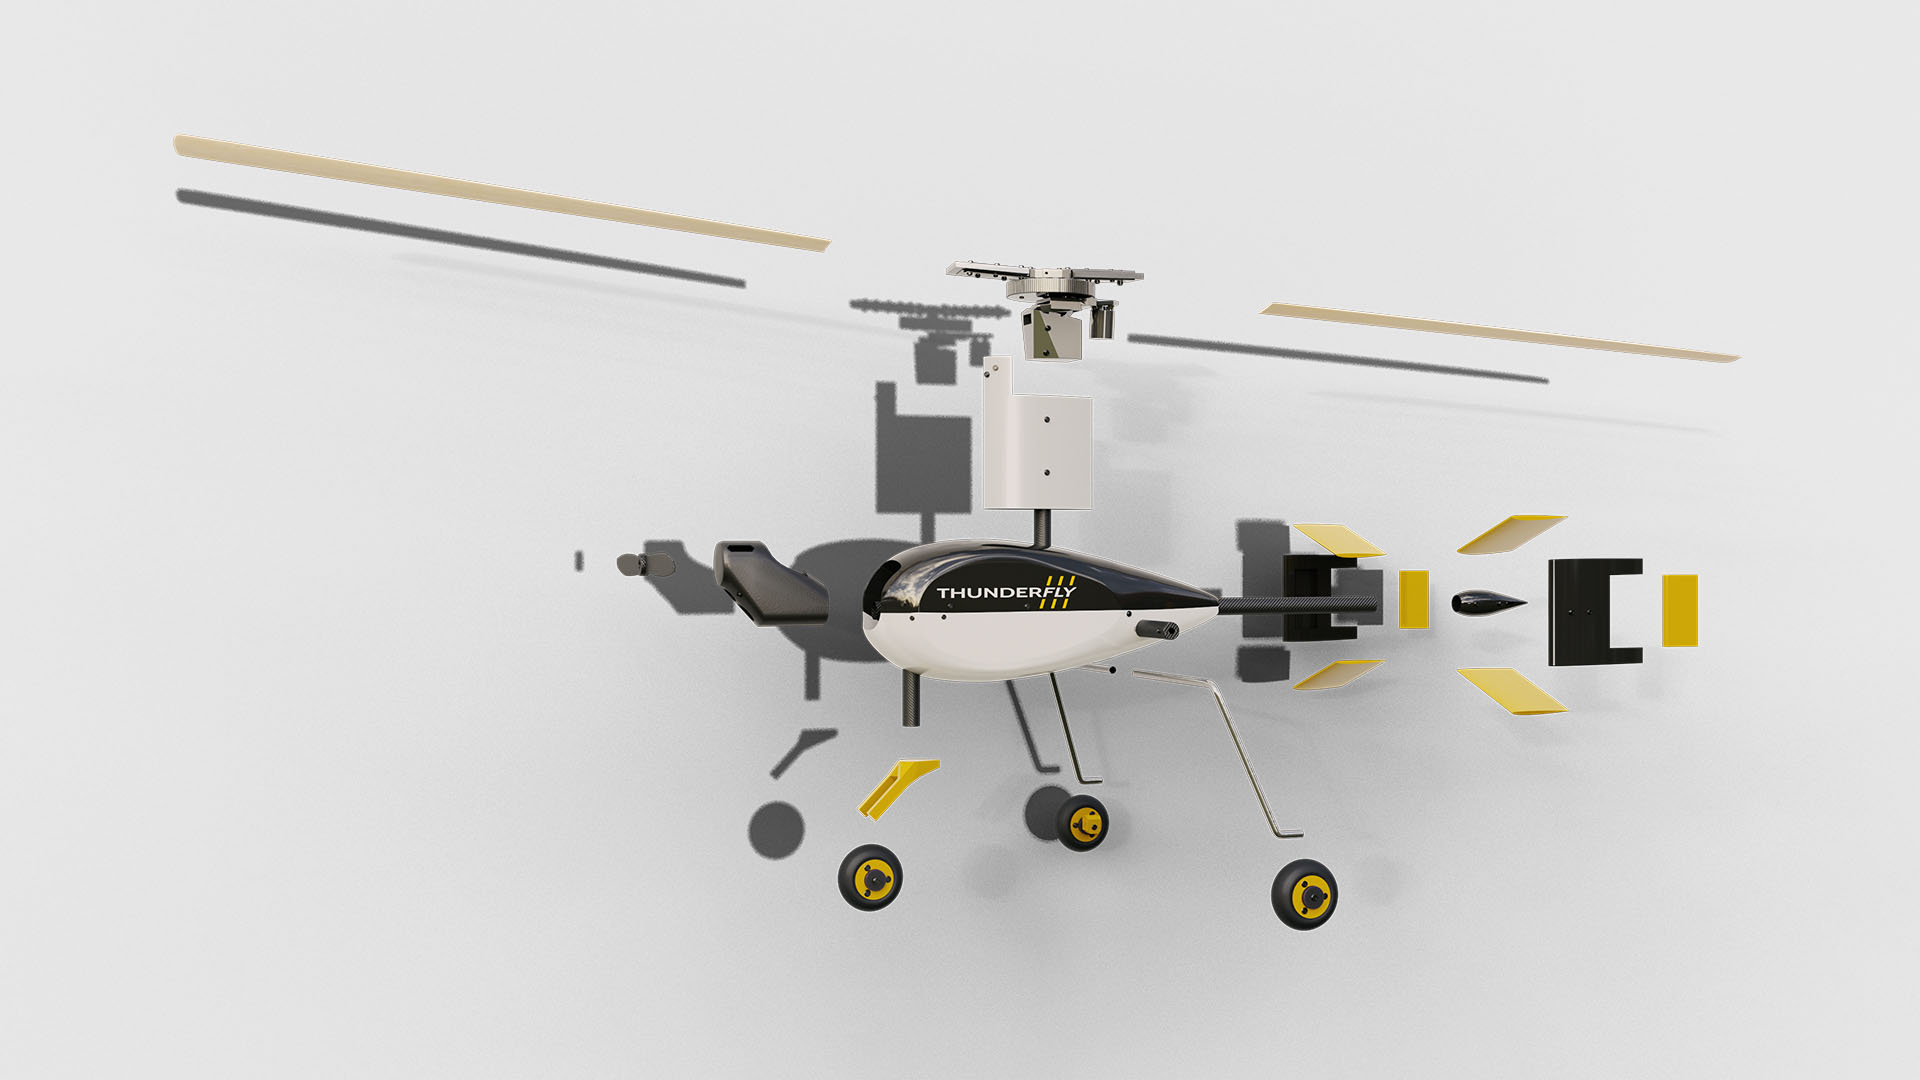 The Autogyro's modular design allows for various payloads and ground control stations